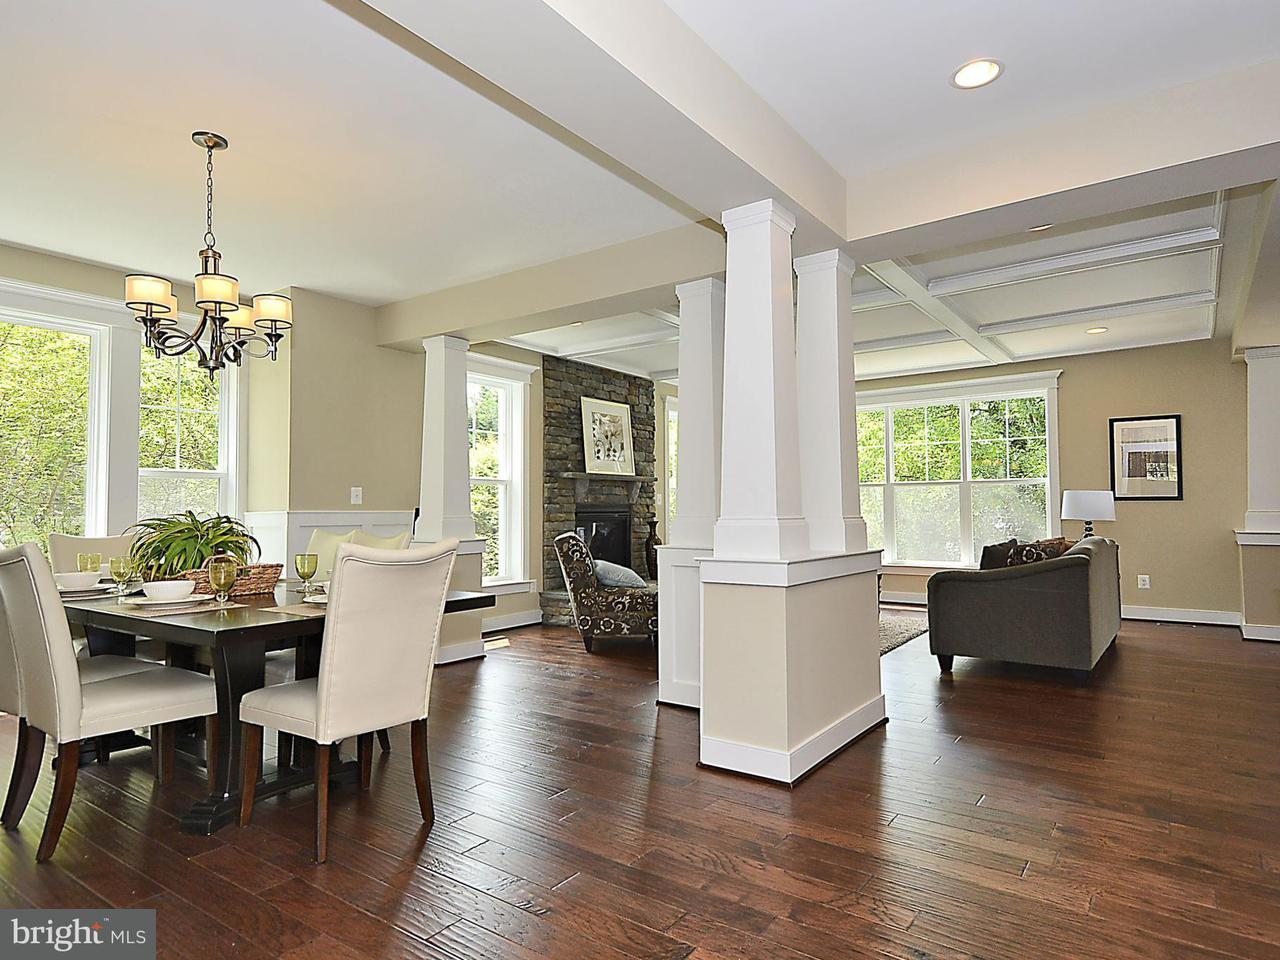 Additional photo for property listing at 12462 Margaret Thomas Lane 12462 Margaret Thomas Lane Herndon, Virginia 20171 United States